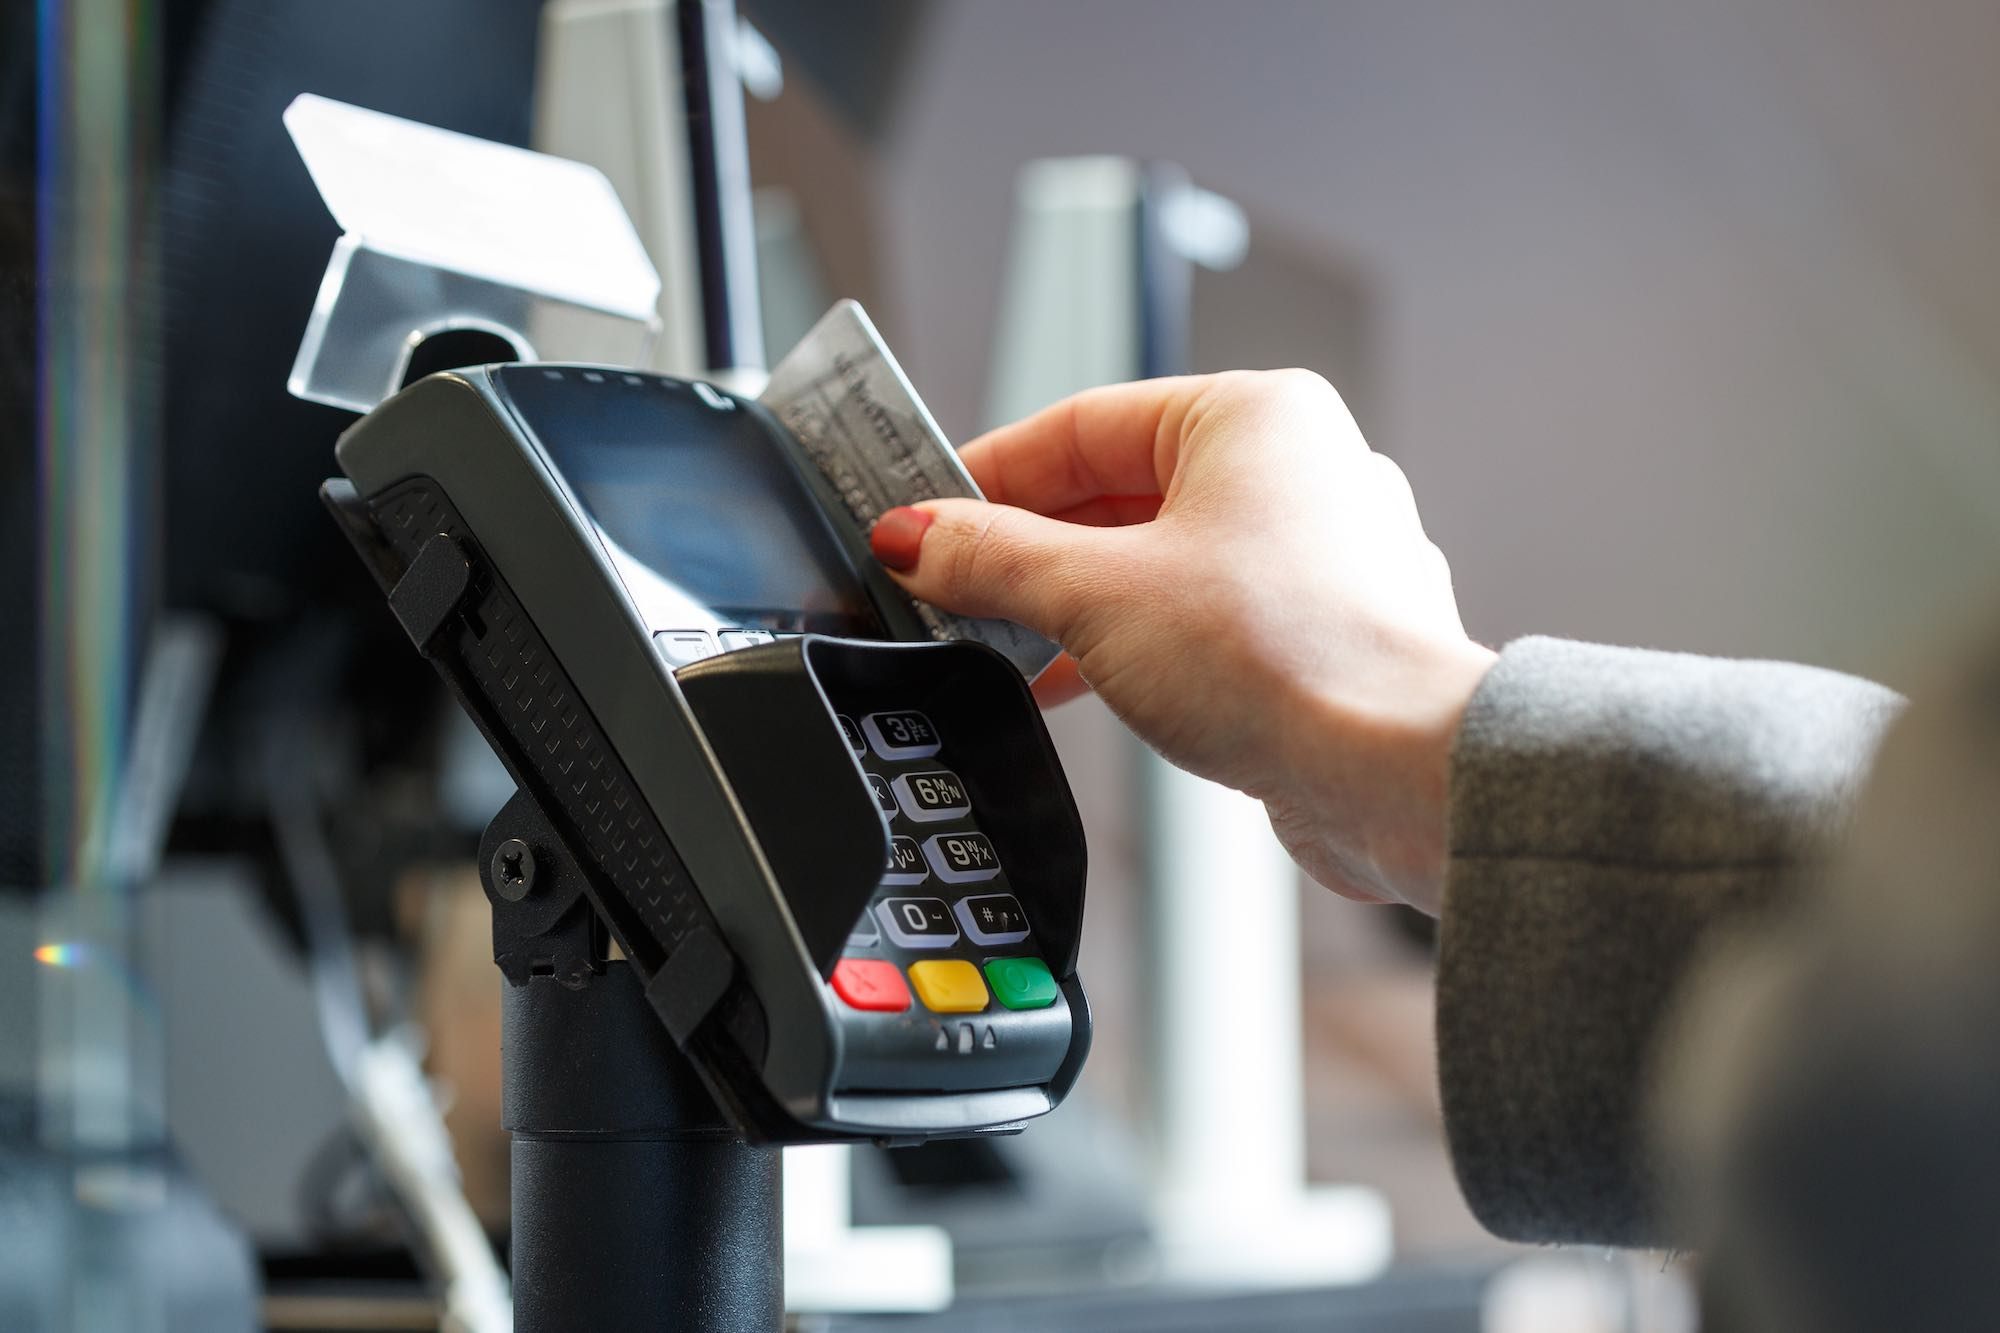 Female hand swiping a card in a card terminal doing payment.